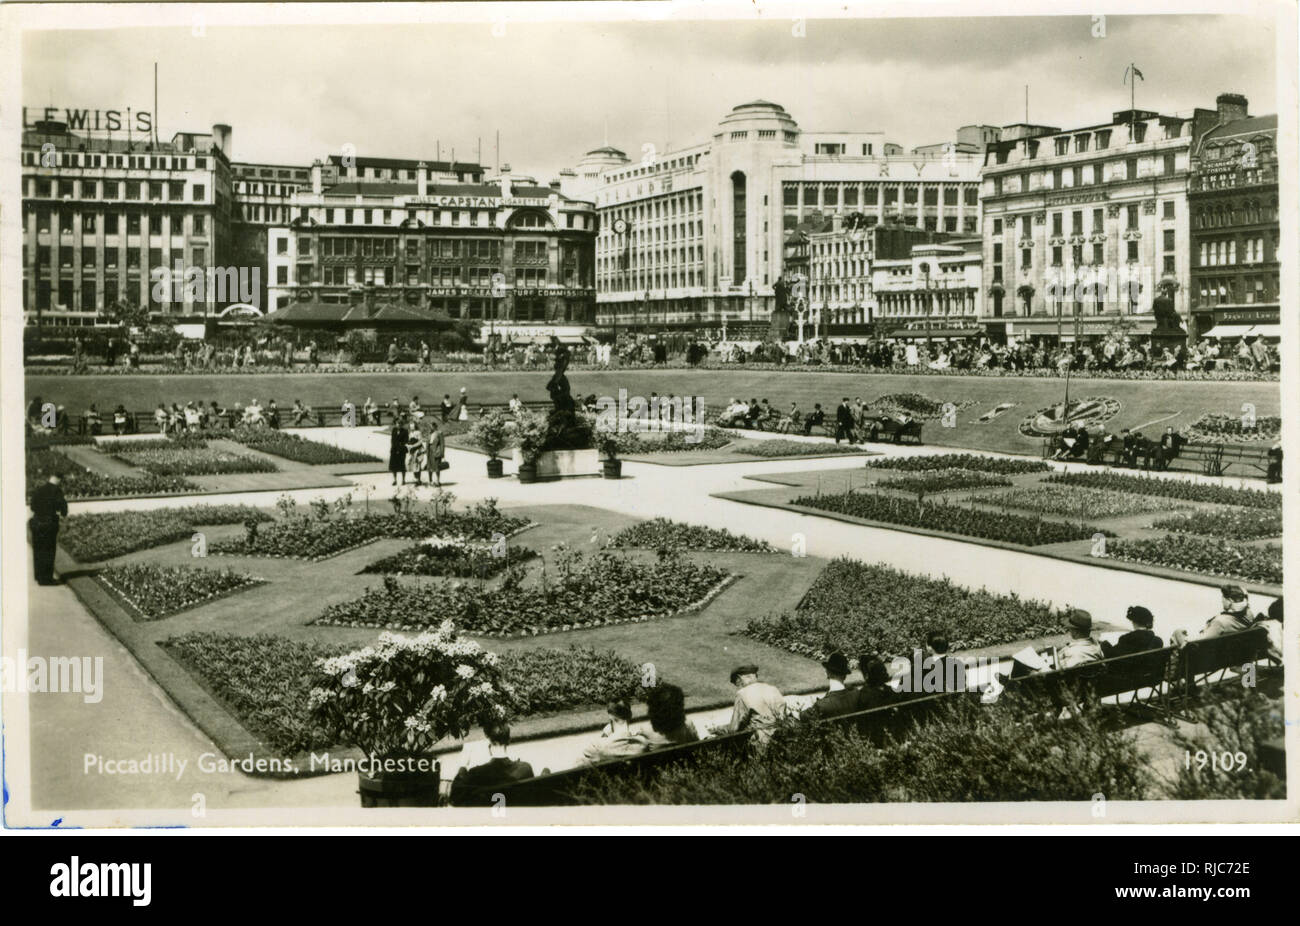 Piccadilly Gardens, Manchester. Stock Photo